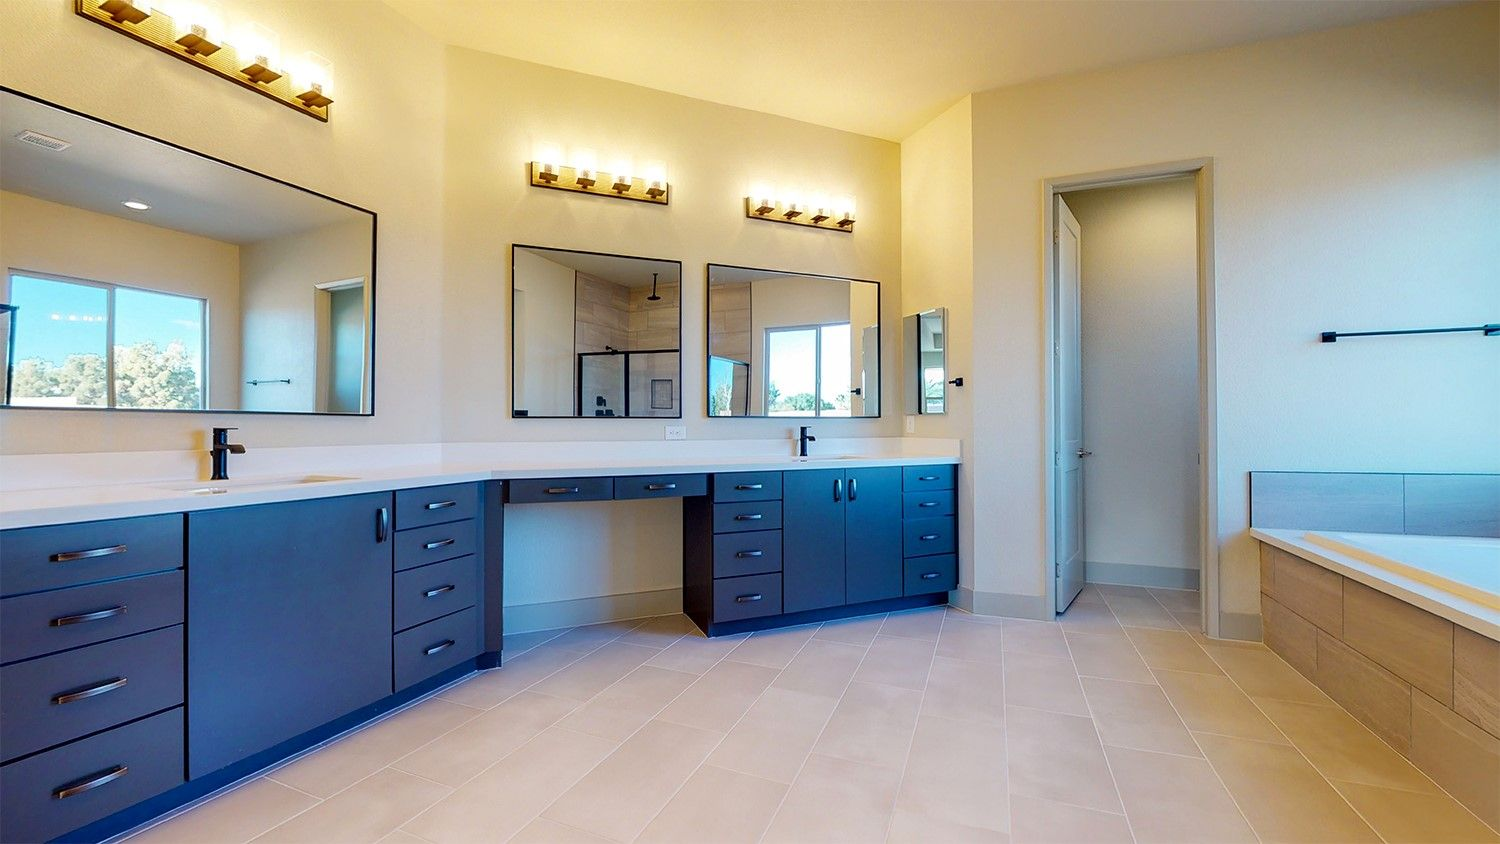 Bathroom featured in the Elegante 3643 By Signature Homes in Las Vegas, NV